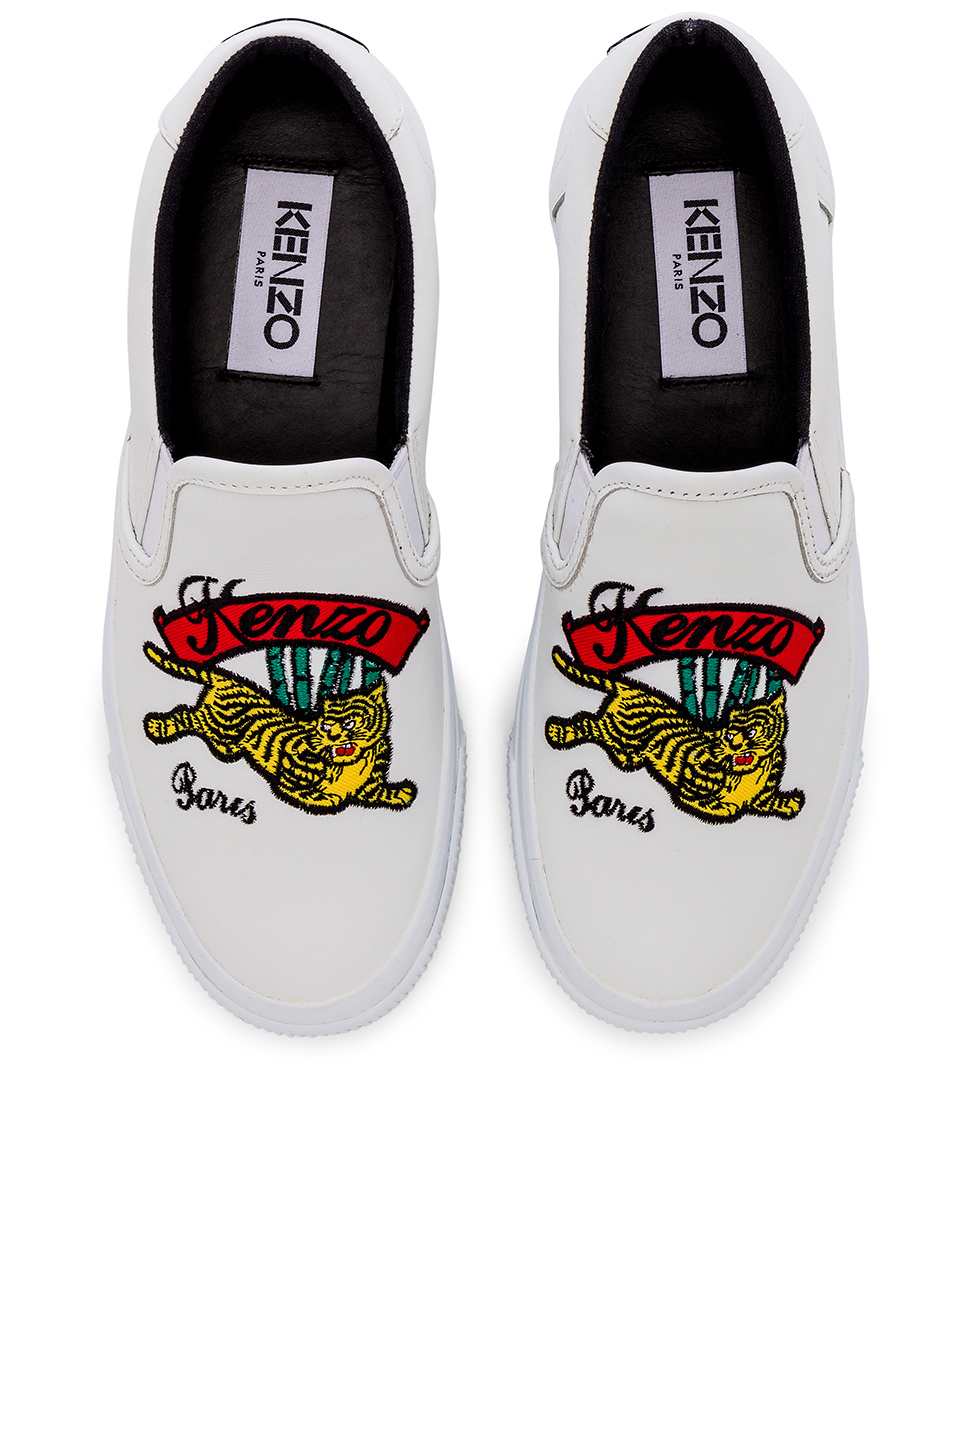 f9286a92b44 Buy Original Kenzo Jumping Tiger Skate Sneakers at Indonesia